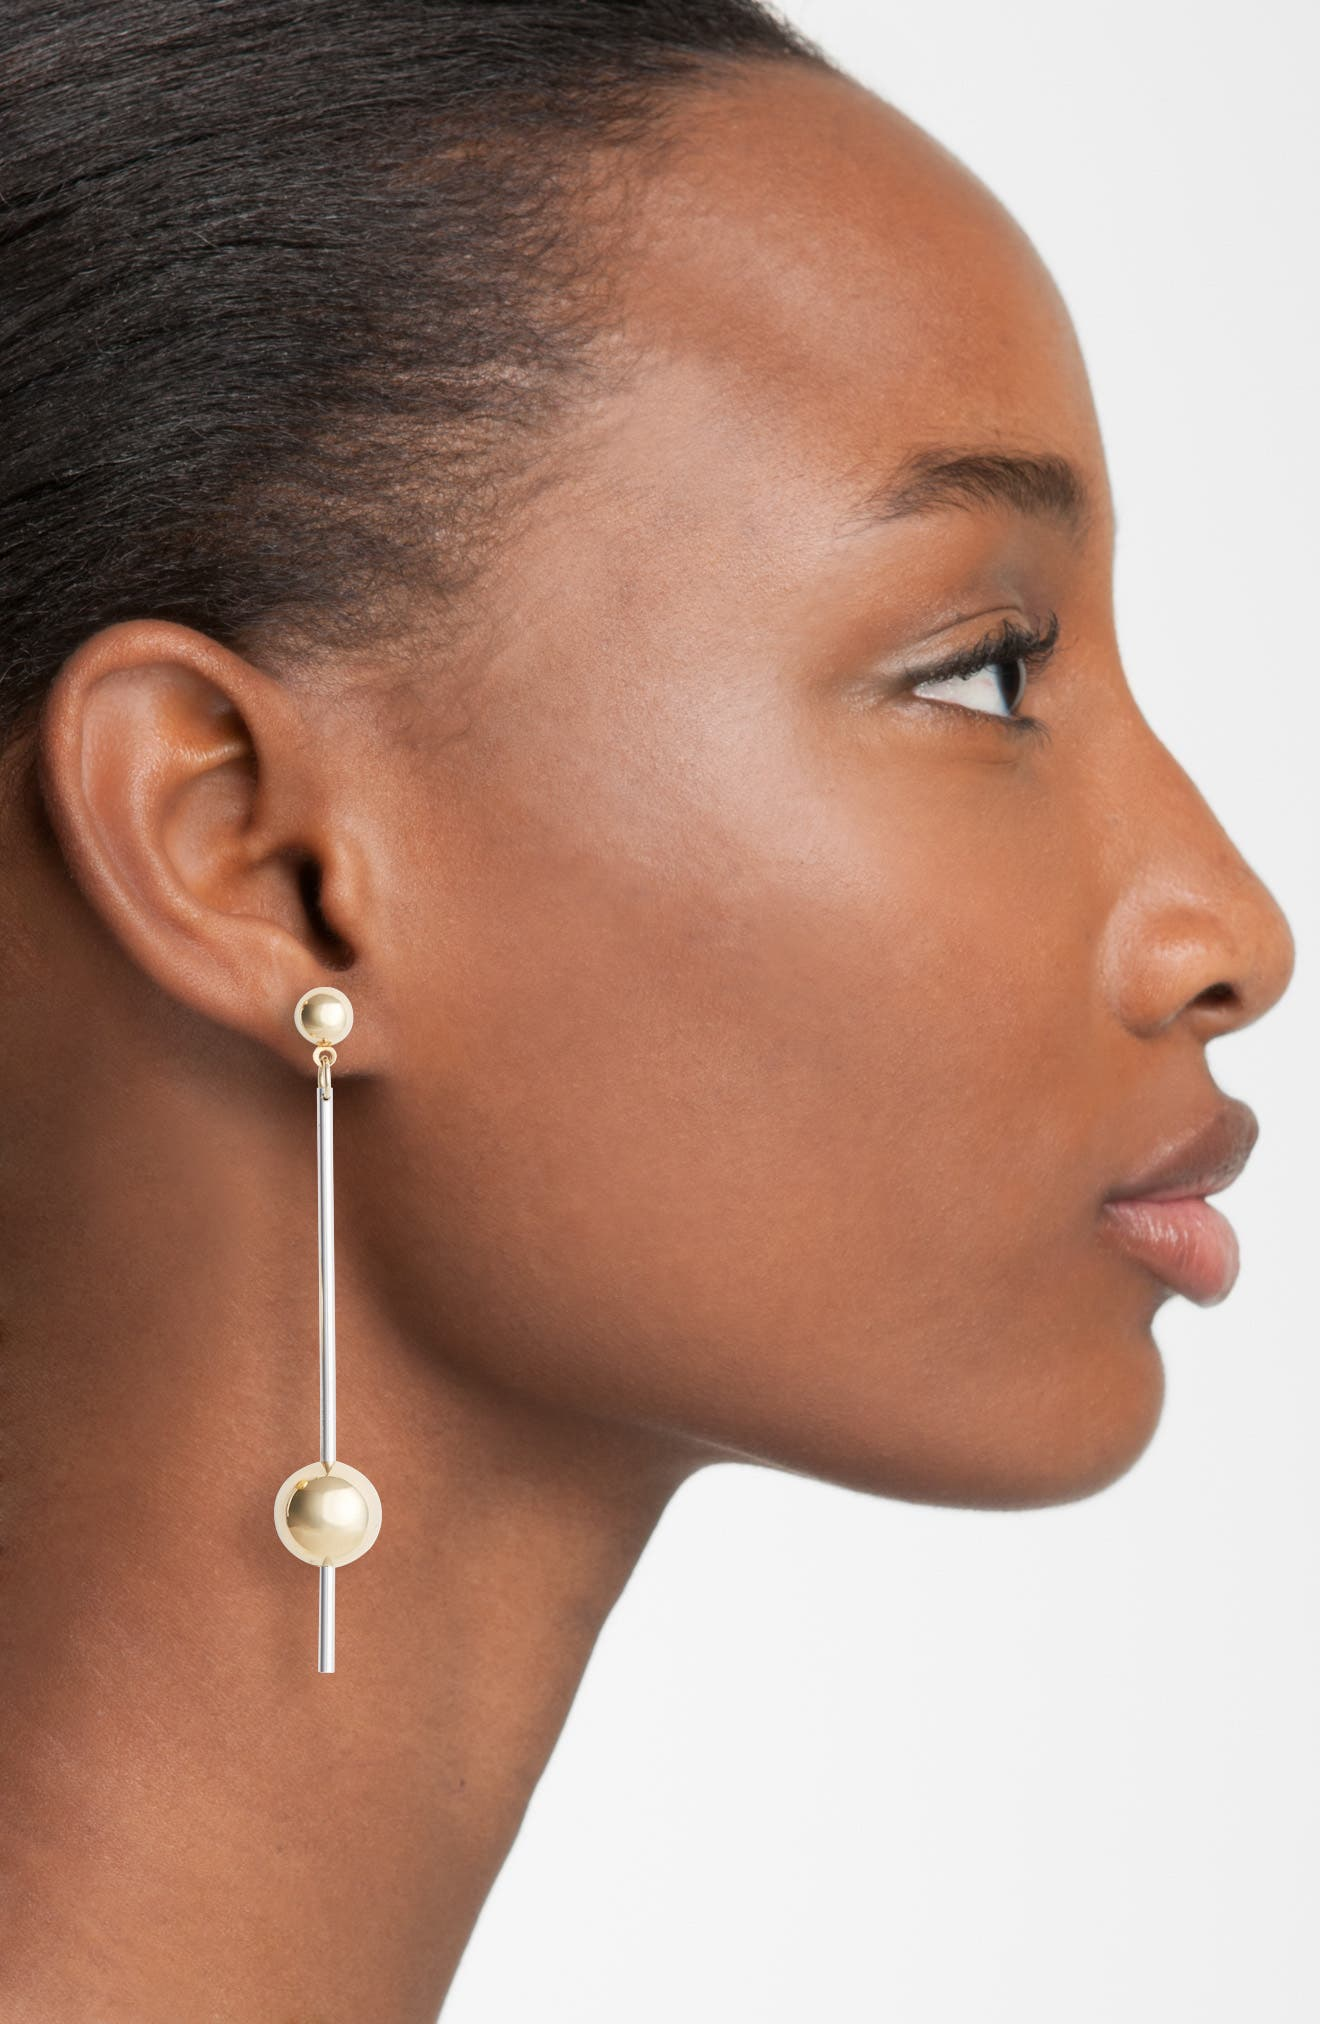 Stick Ball Earrings,                             Alternate thumbnail 2, color,                             040